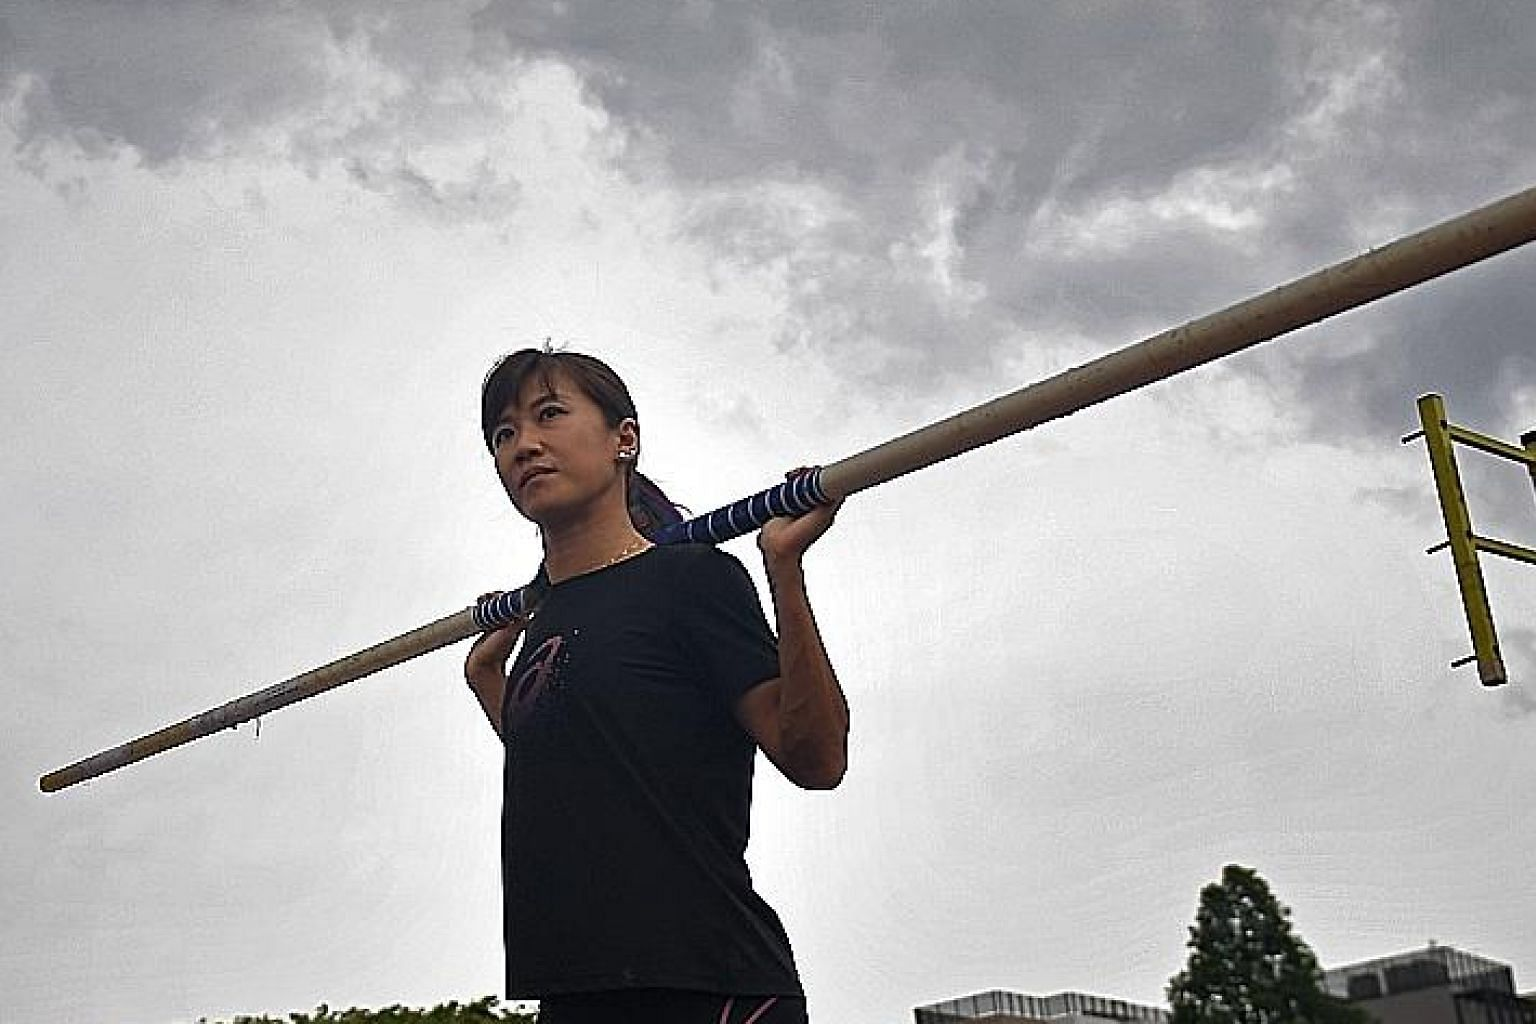 For now, Rachel Yang will come under former national heptathlete Yu Long Nyu, who is not a specialist pole vault coach, at the SEA Games in the Philippines.